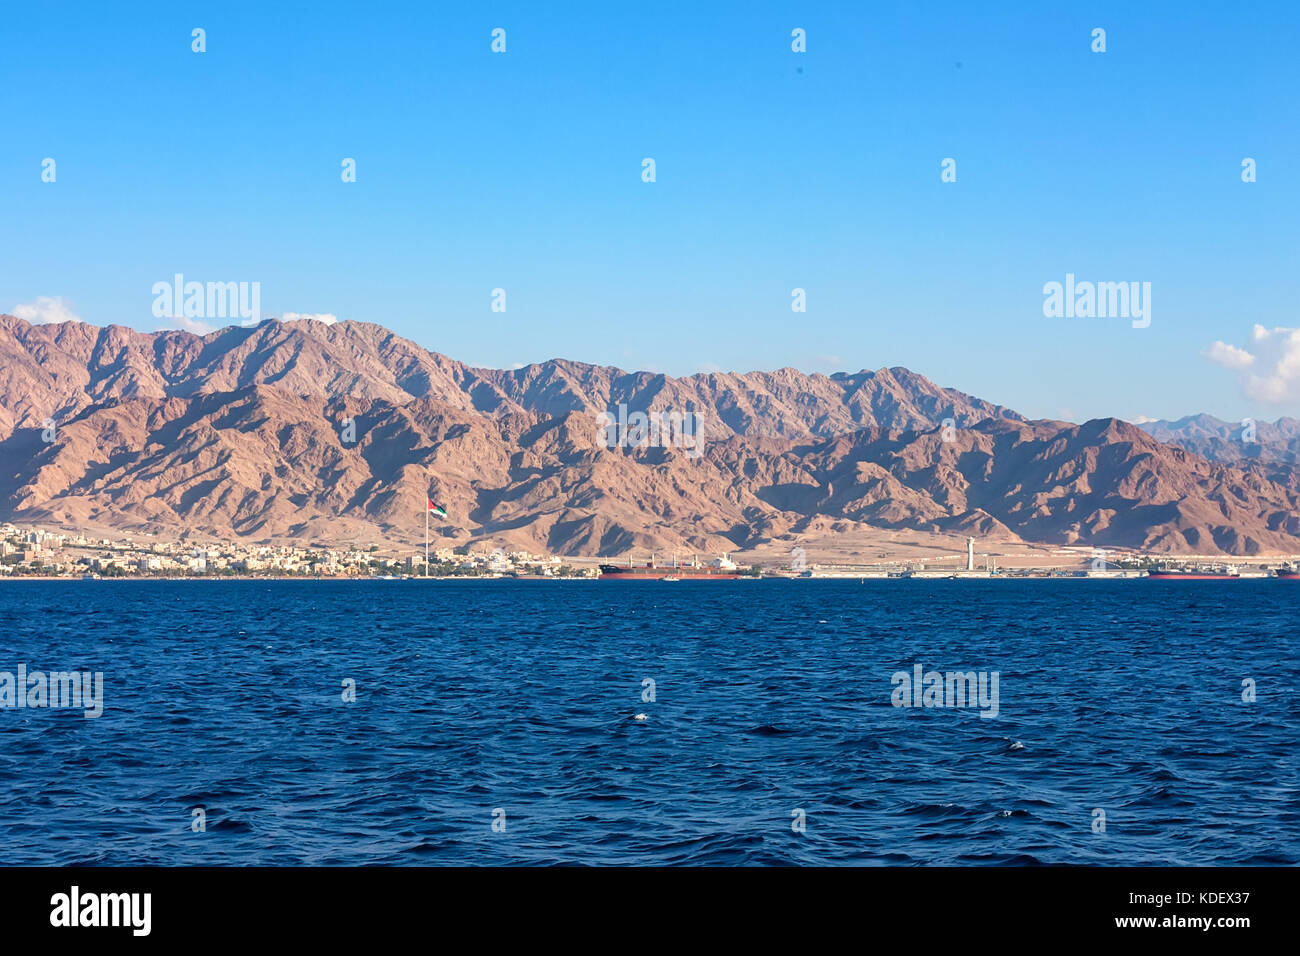 Coastline landscape of Red Sea in Gulf of Aqaba - Stock Image